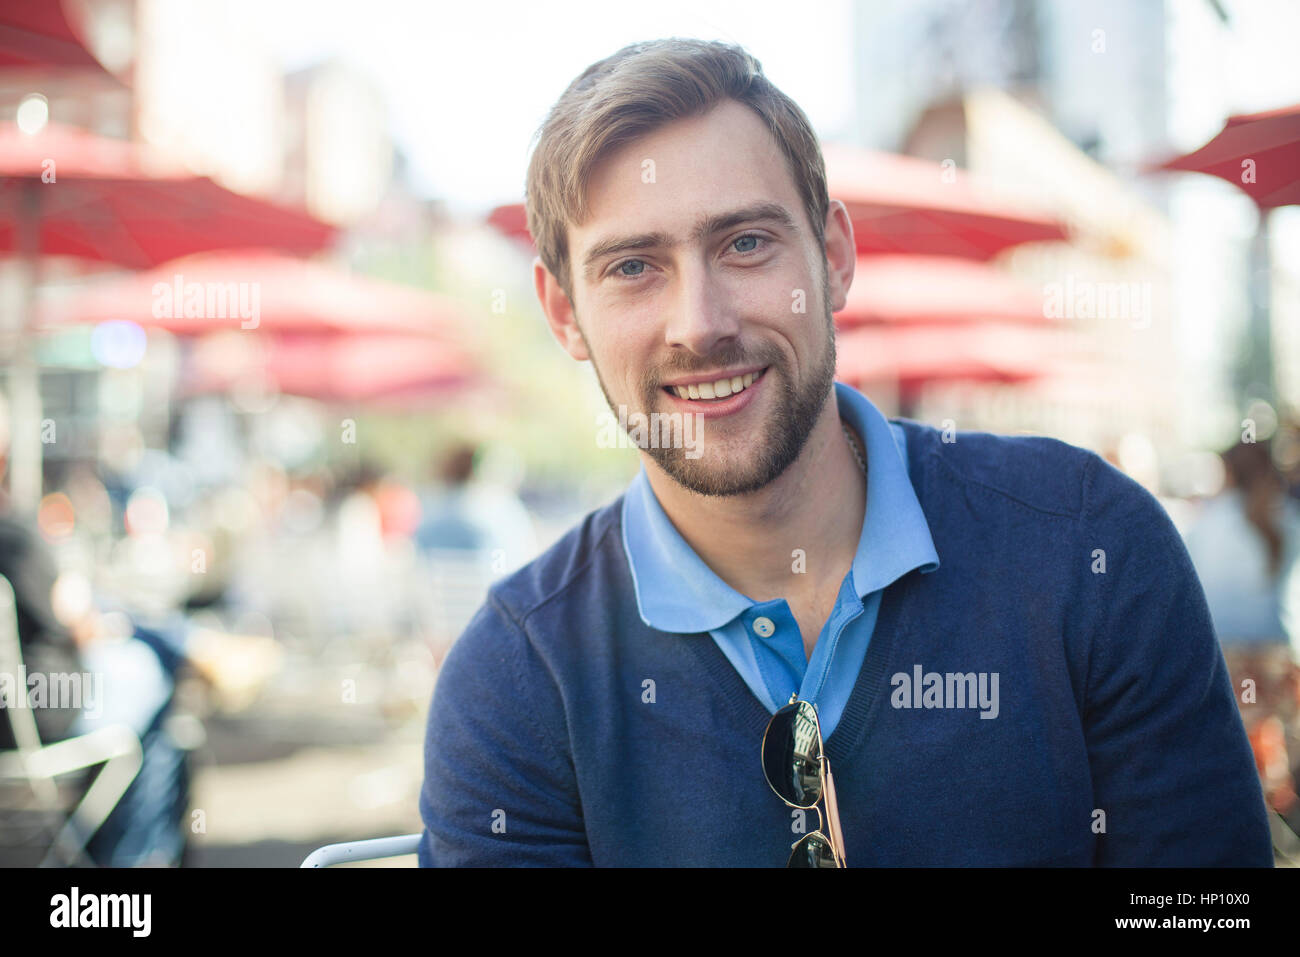 Young man smiling outdoors, portrait - Stock Image